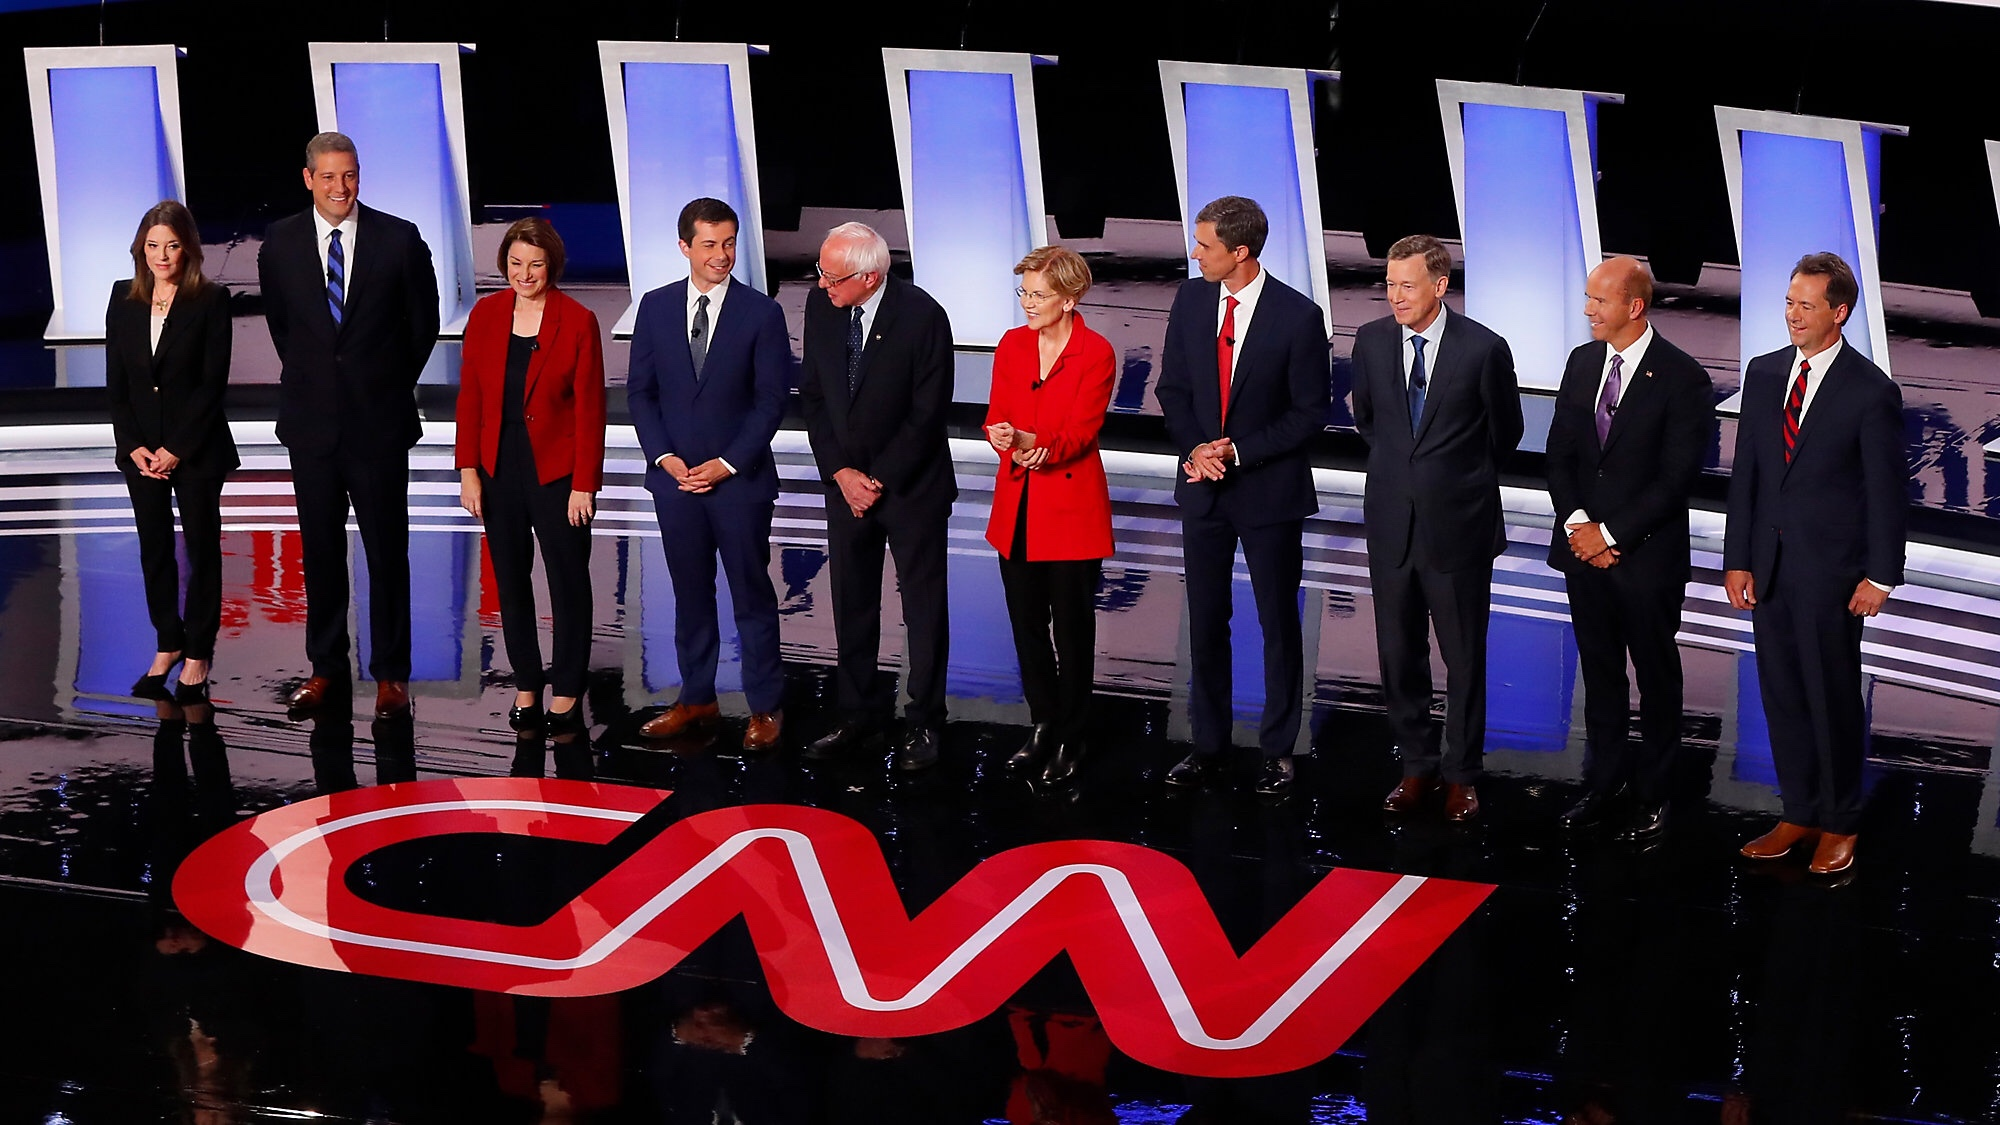 Democratic Primary Debates